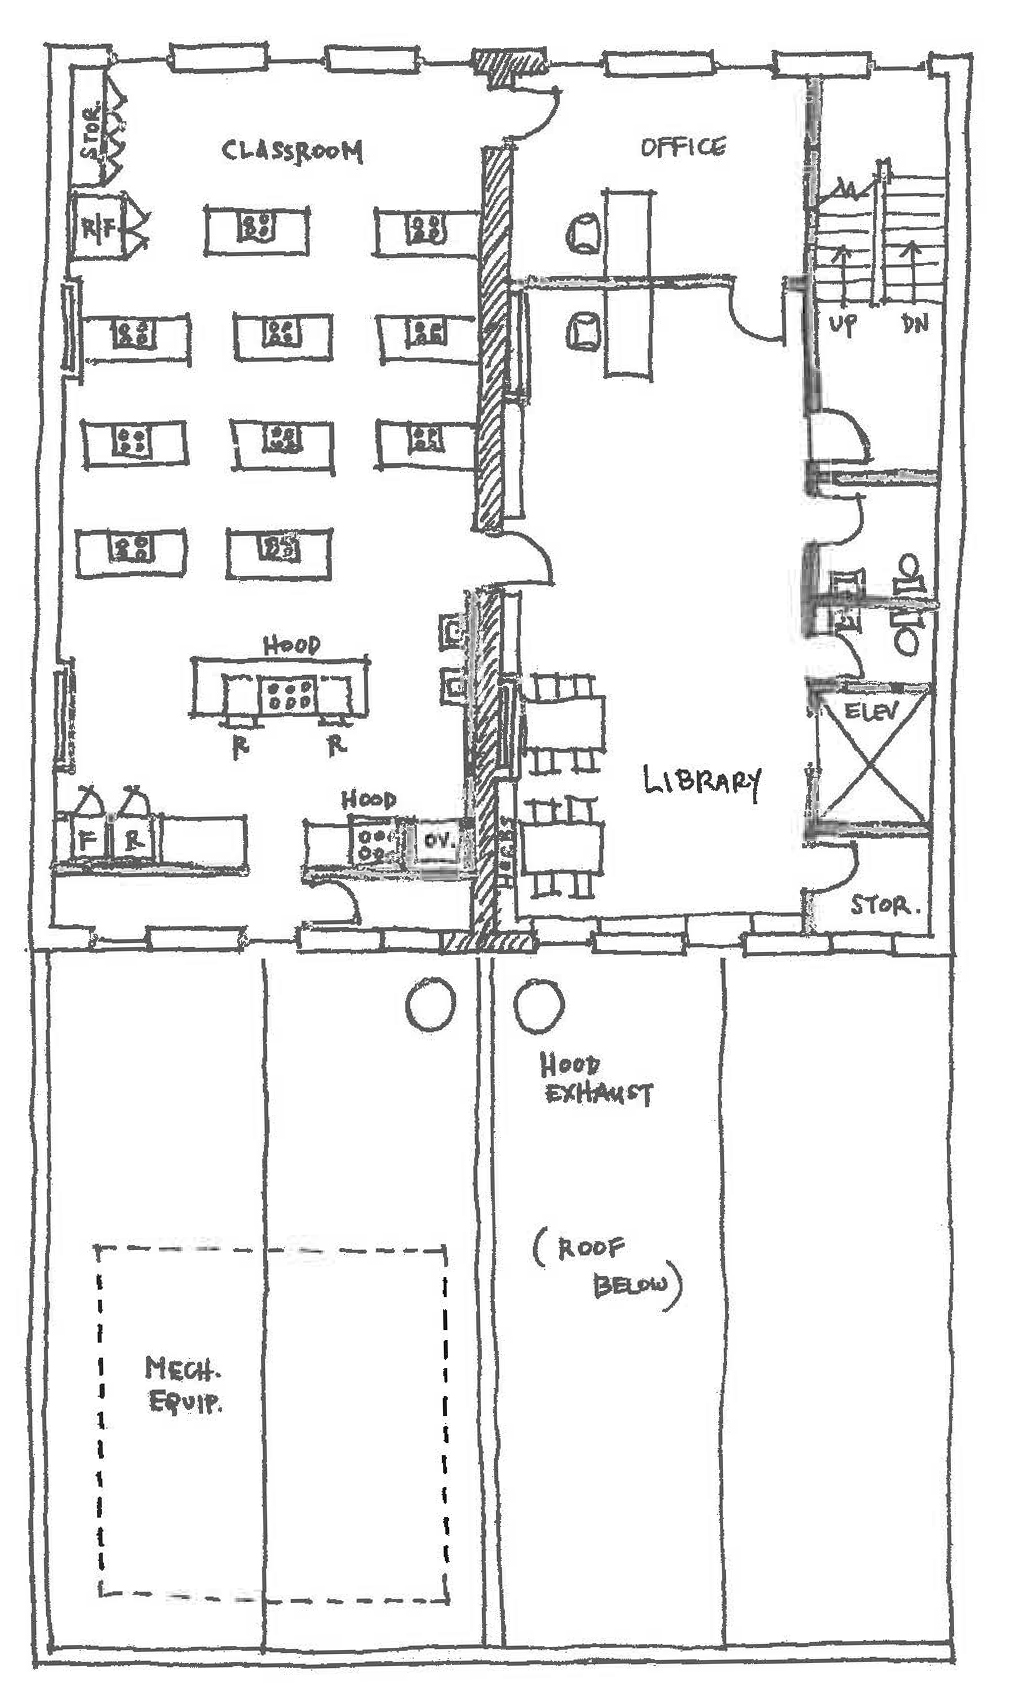 Second Floor drawing plans by LS3P